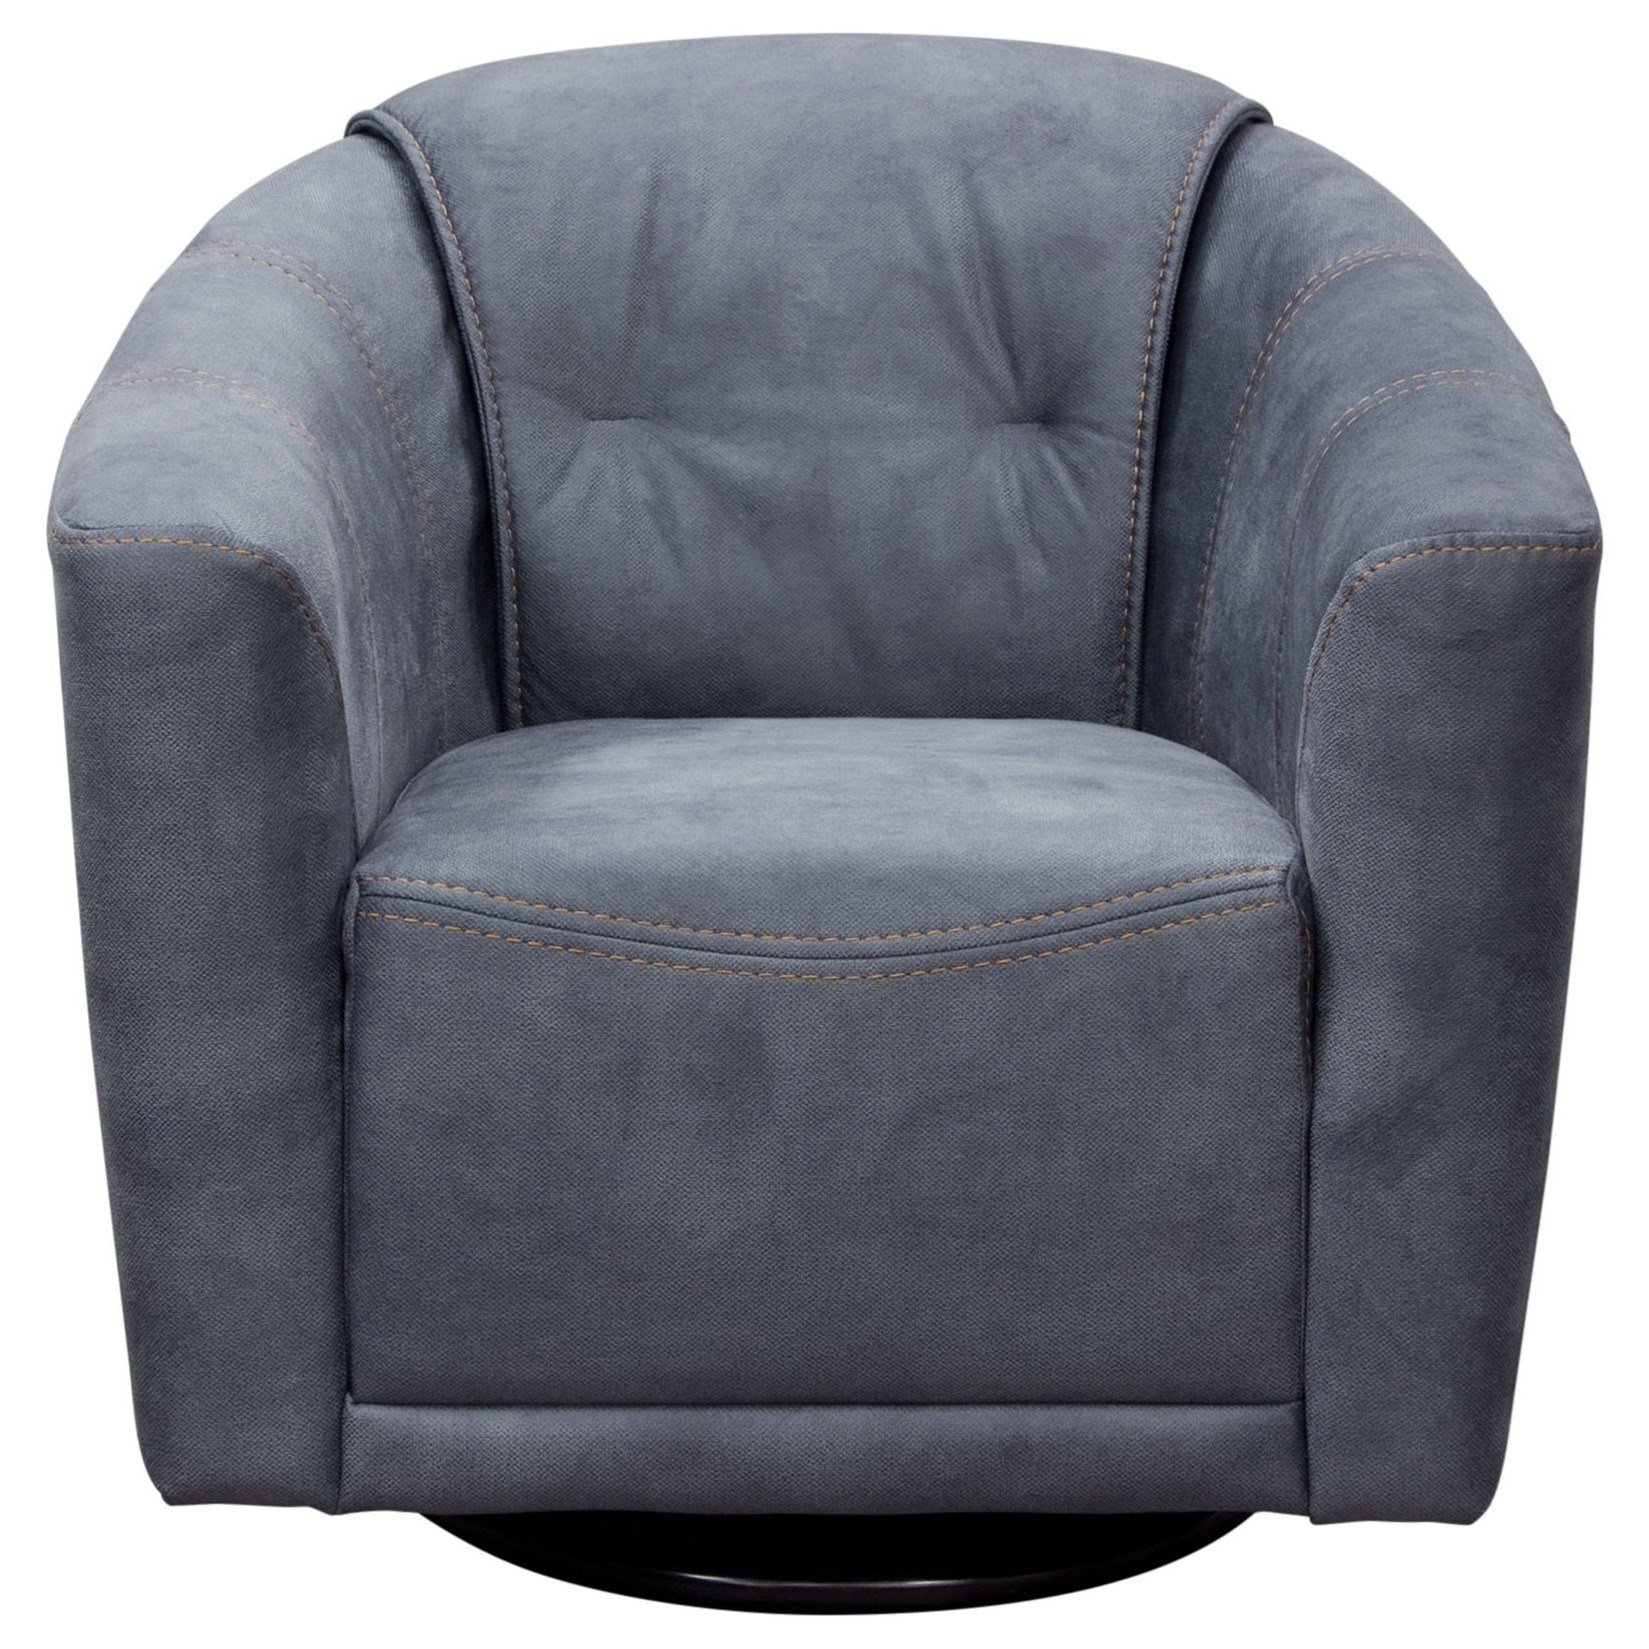 Diamond Sofa Accent Chairs Murphychgr Swivel Accent Chair In Light Intended For Umber Grey Swivel Accent Chairs (Image 9 of 20)